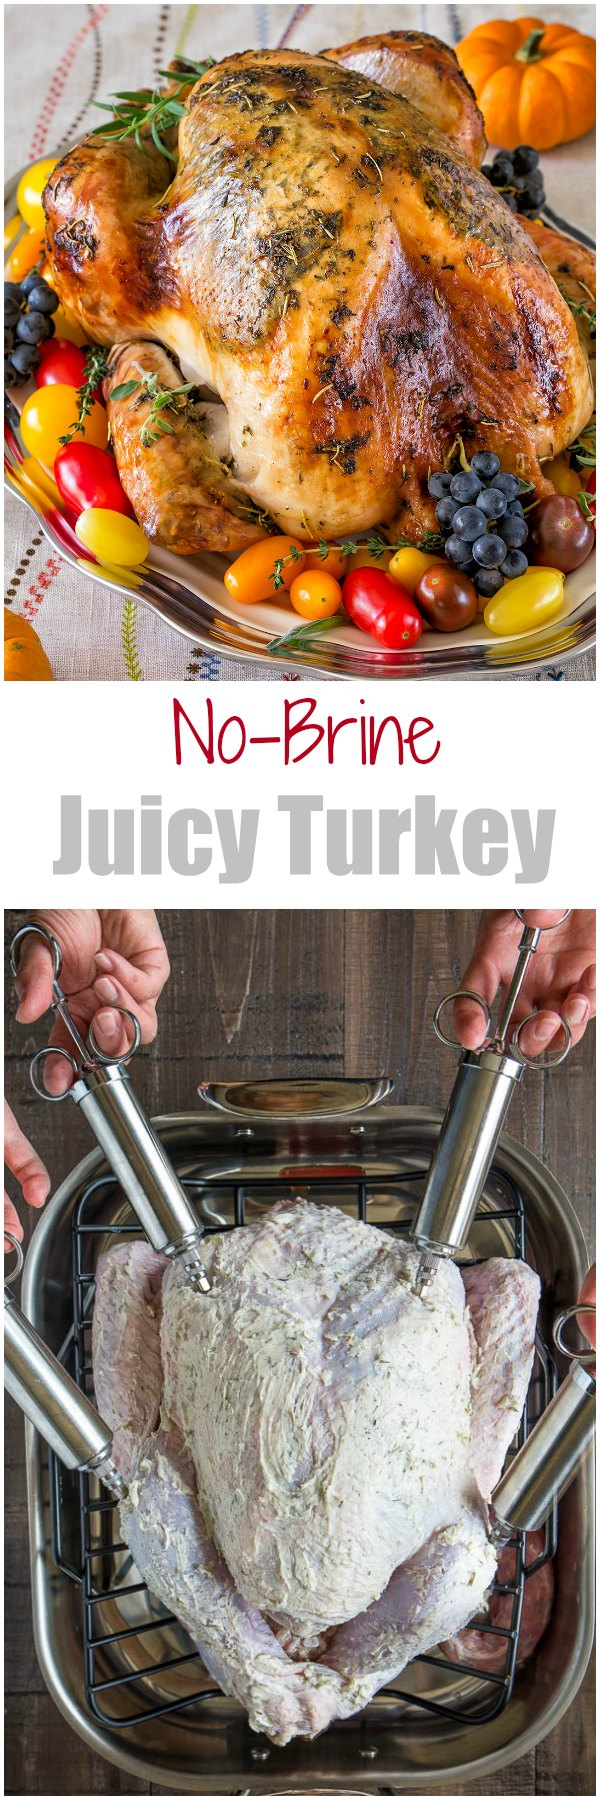 Sharing my secret to super juicy no brine roast turkey recipe that will make you a hero of your Thanksgiving dinner. It involves a bottle of champagne and melted butter! Seriously, unless you want to, you really don't have to brine your bird any more.#ThanksgivingRecipes #Thanksgiving #ThanksgivingTurkey #RoastTurkey #howtoroastawholeturkey #wholeturkey